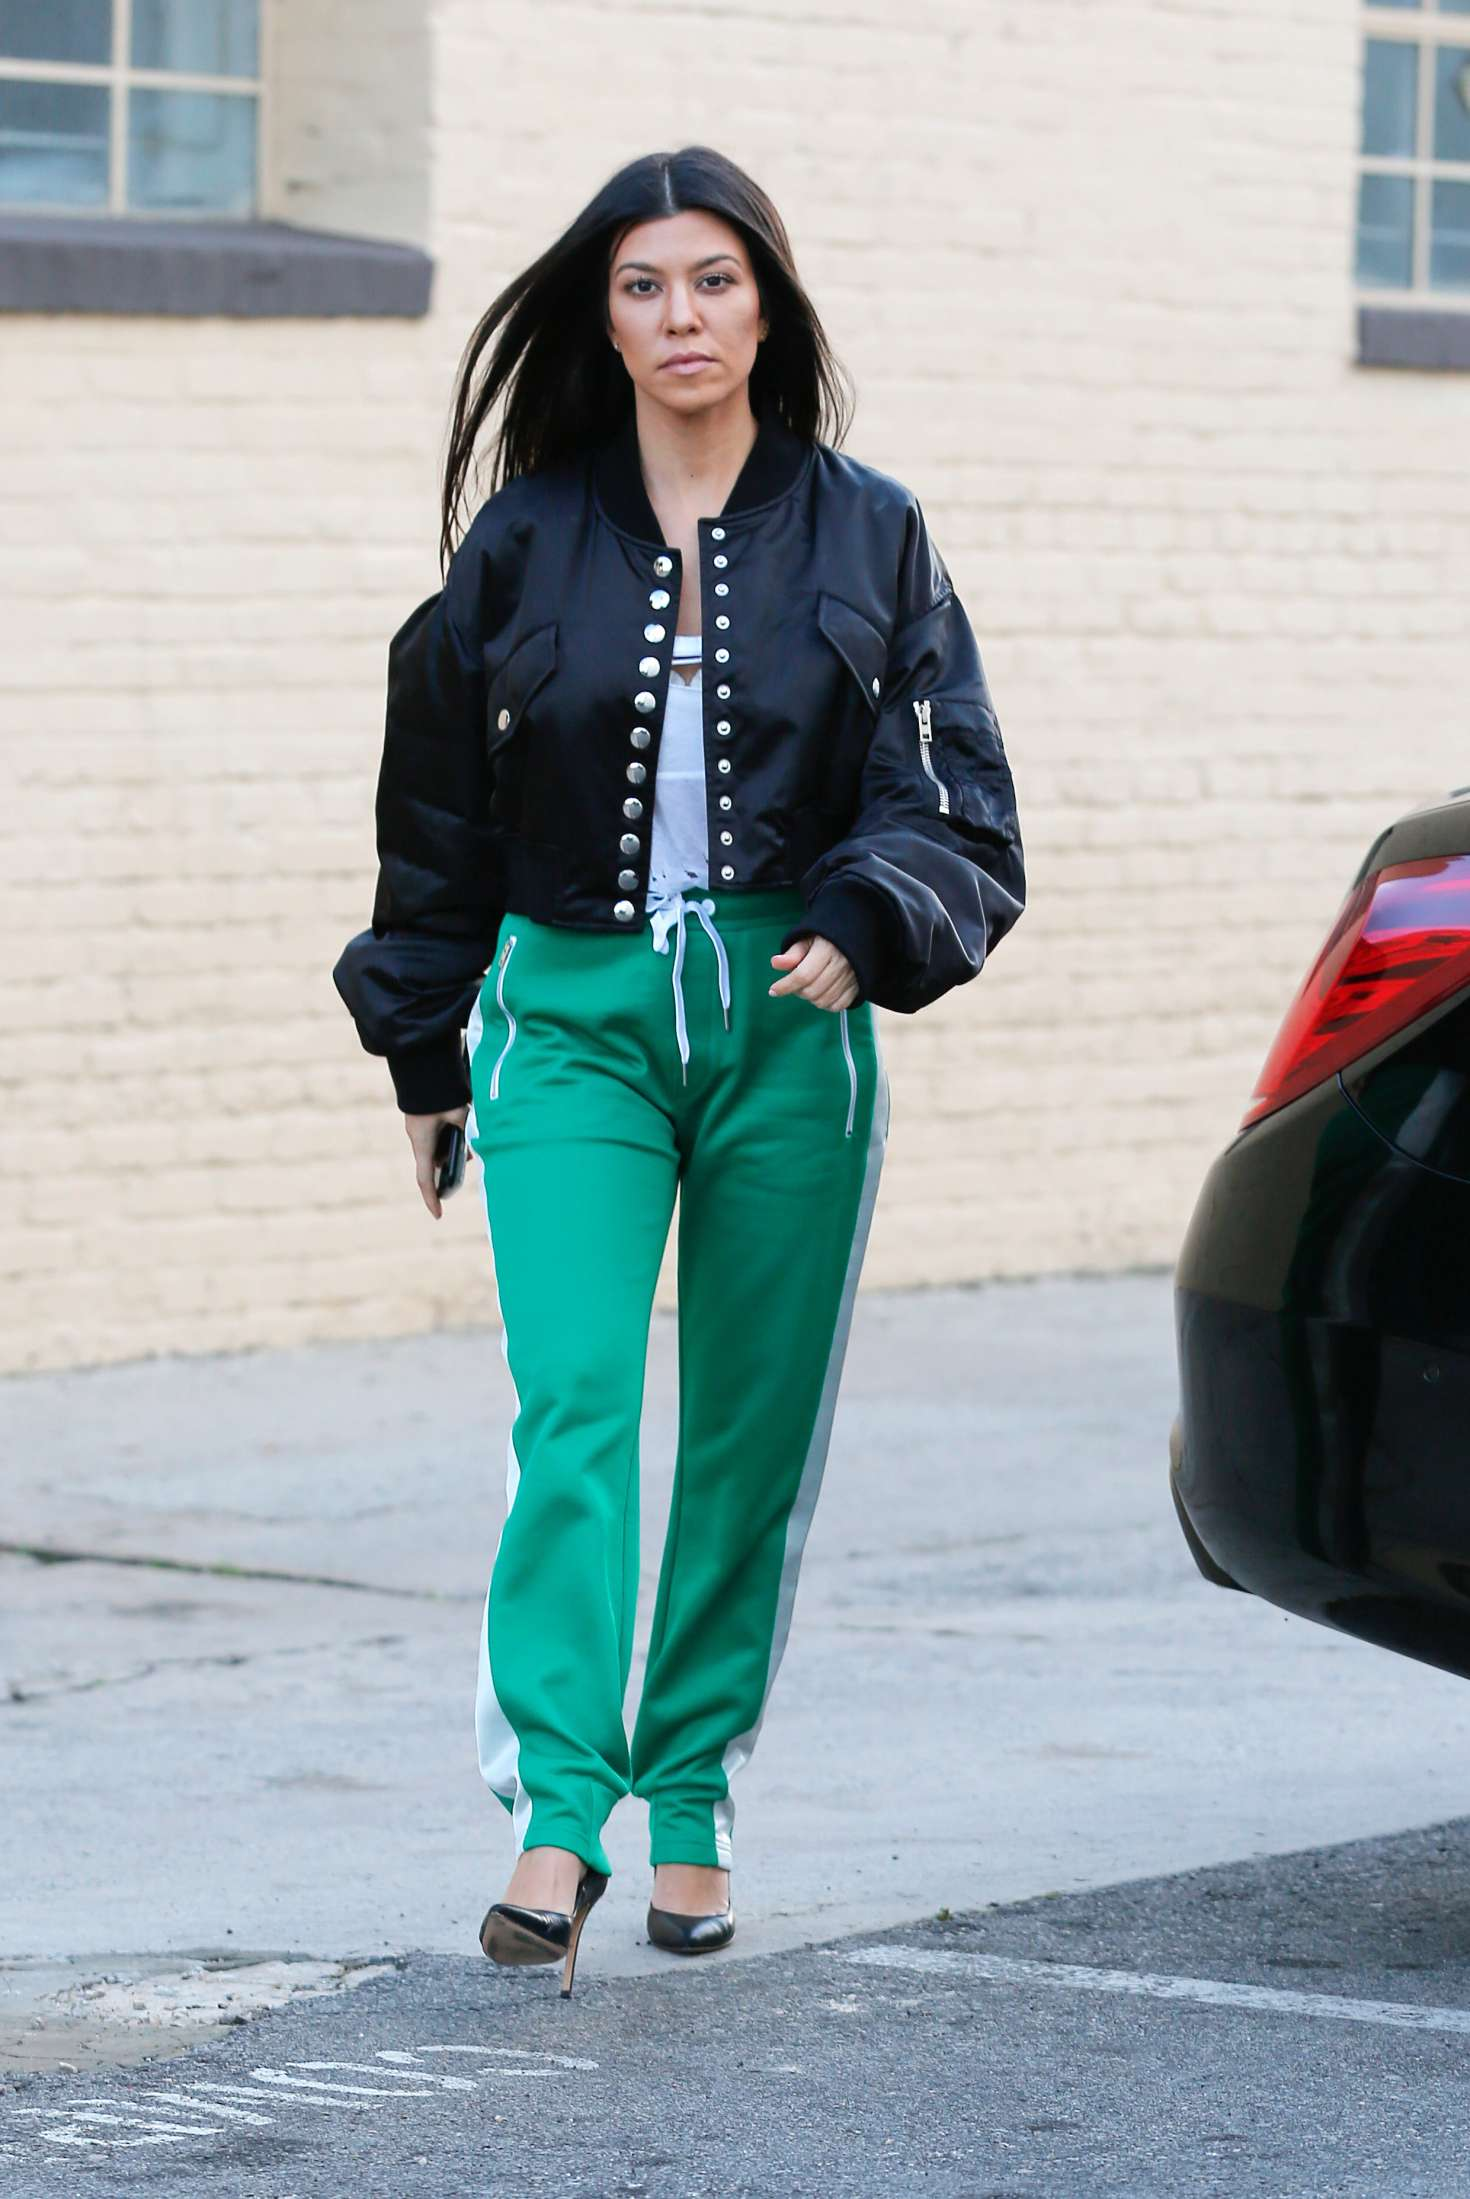 kourtney kardashian in green street style 07 gotceleb. Black Bedroom Furniture Sets. Home Design Ideas